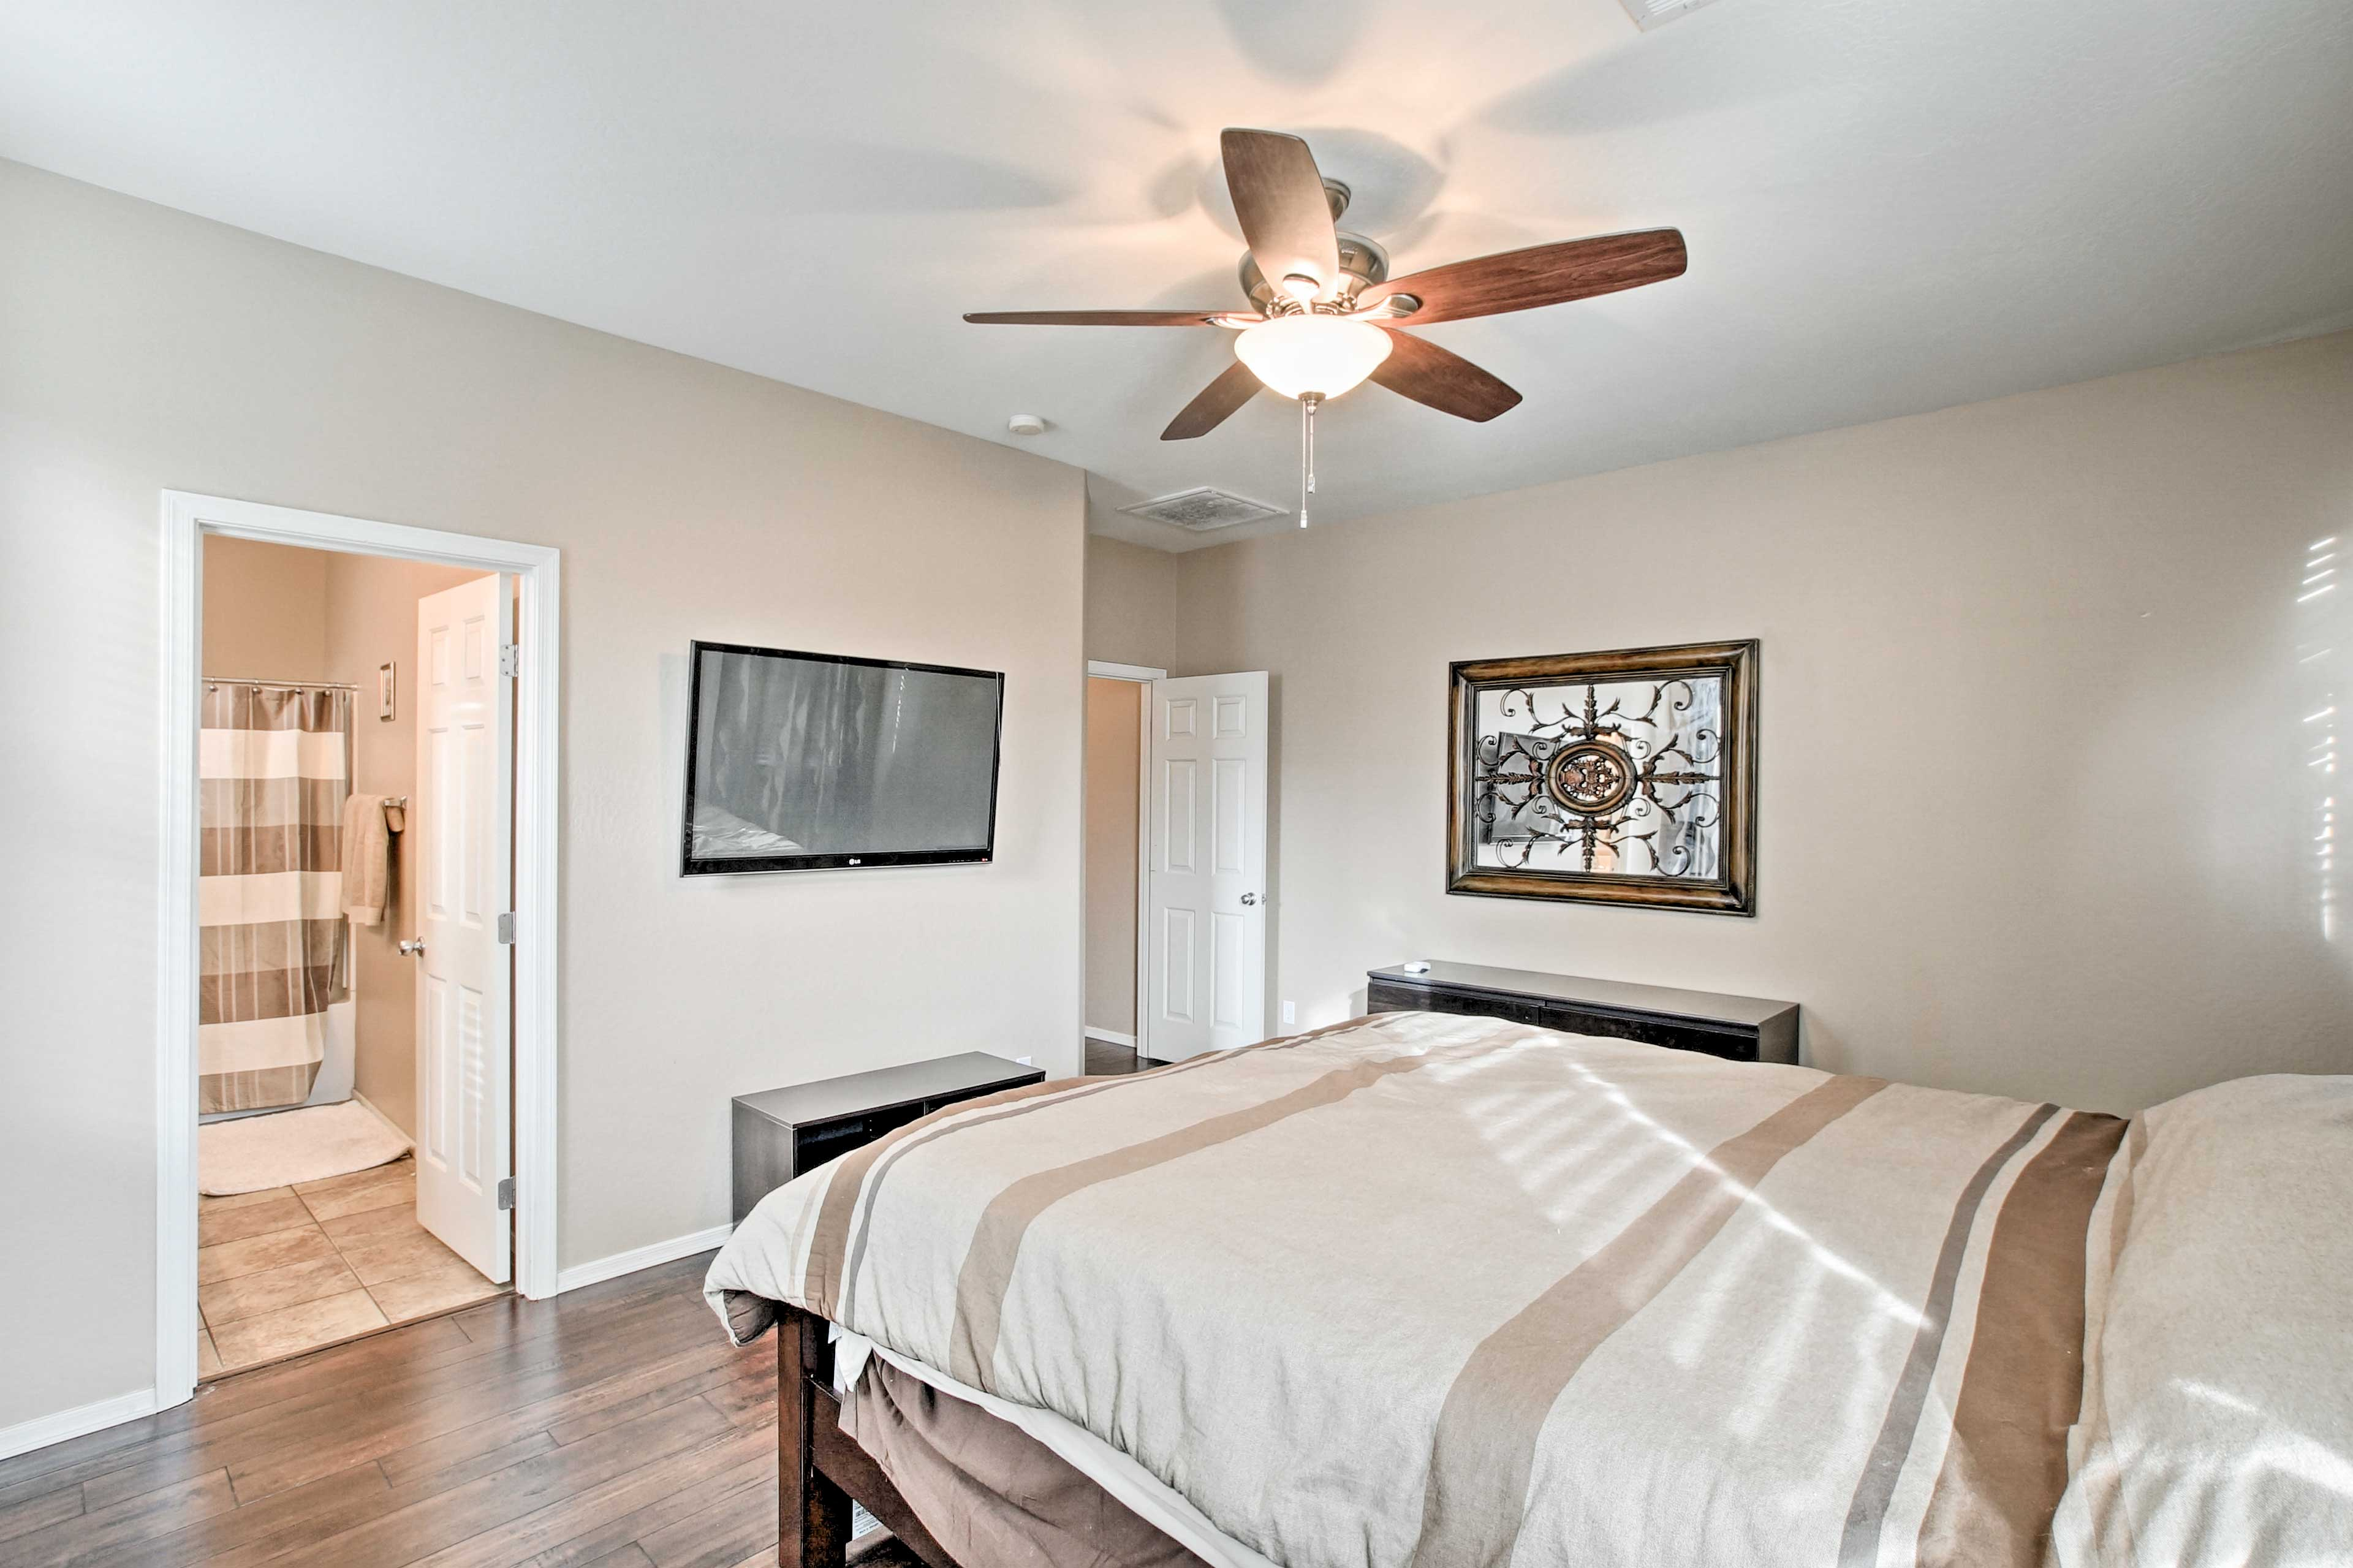 The master bedroom features a king-sized bed and en-suite bathroom.